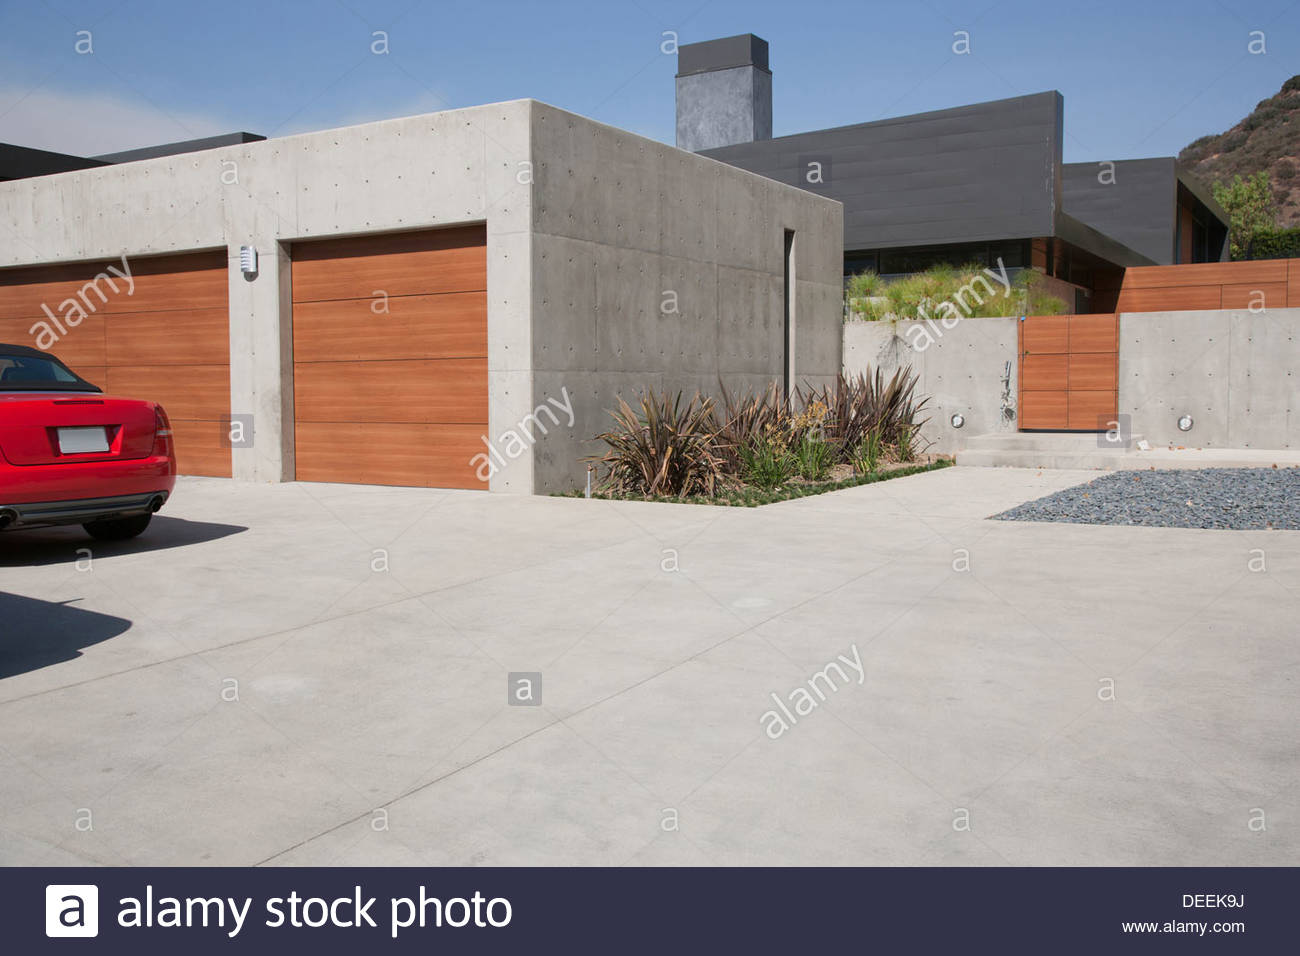 Exterior of modern two-car garage - Stock Image